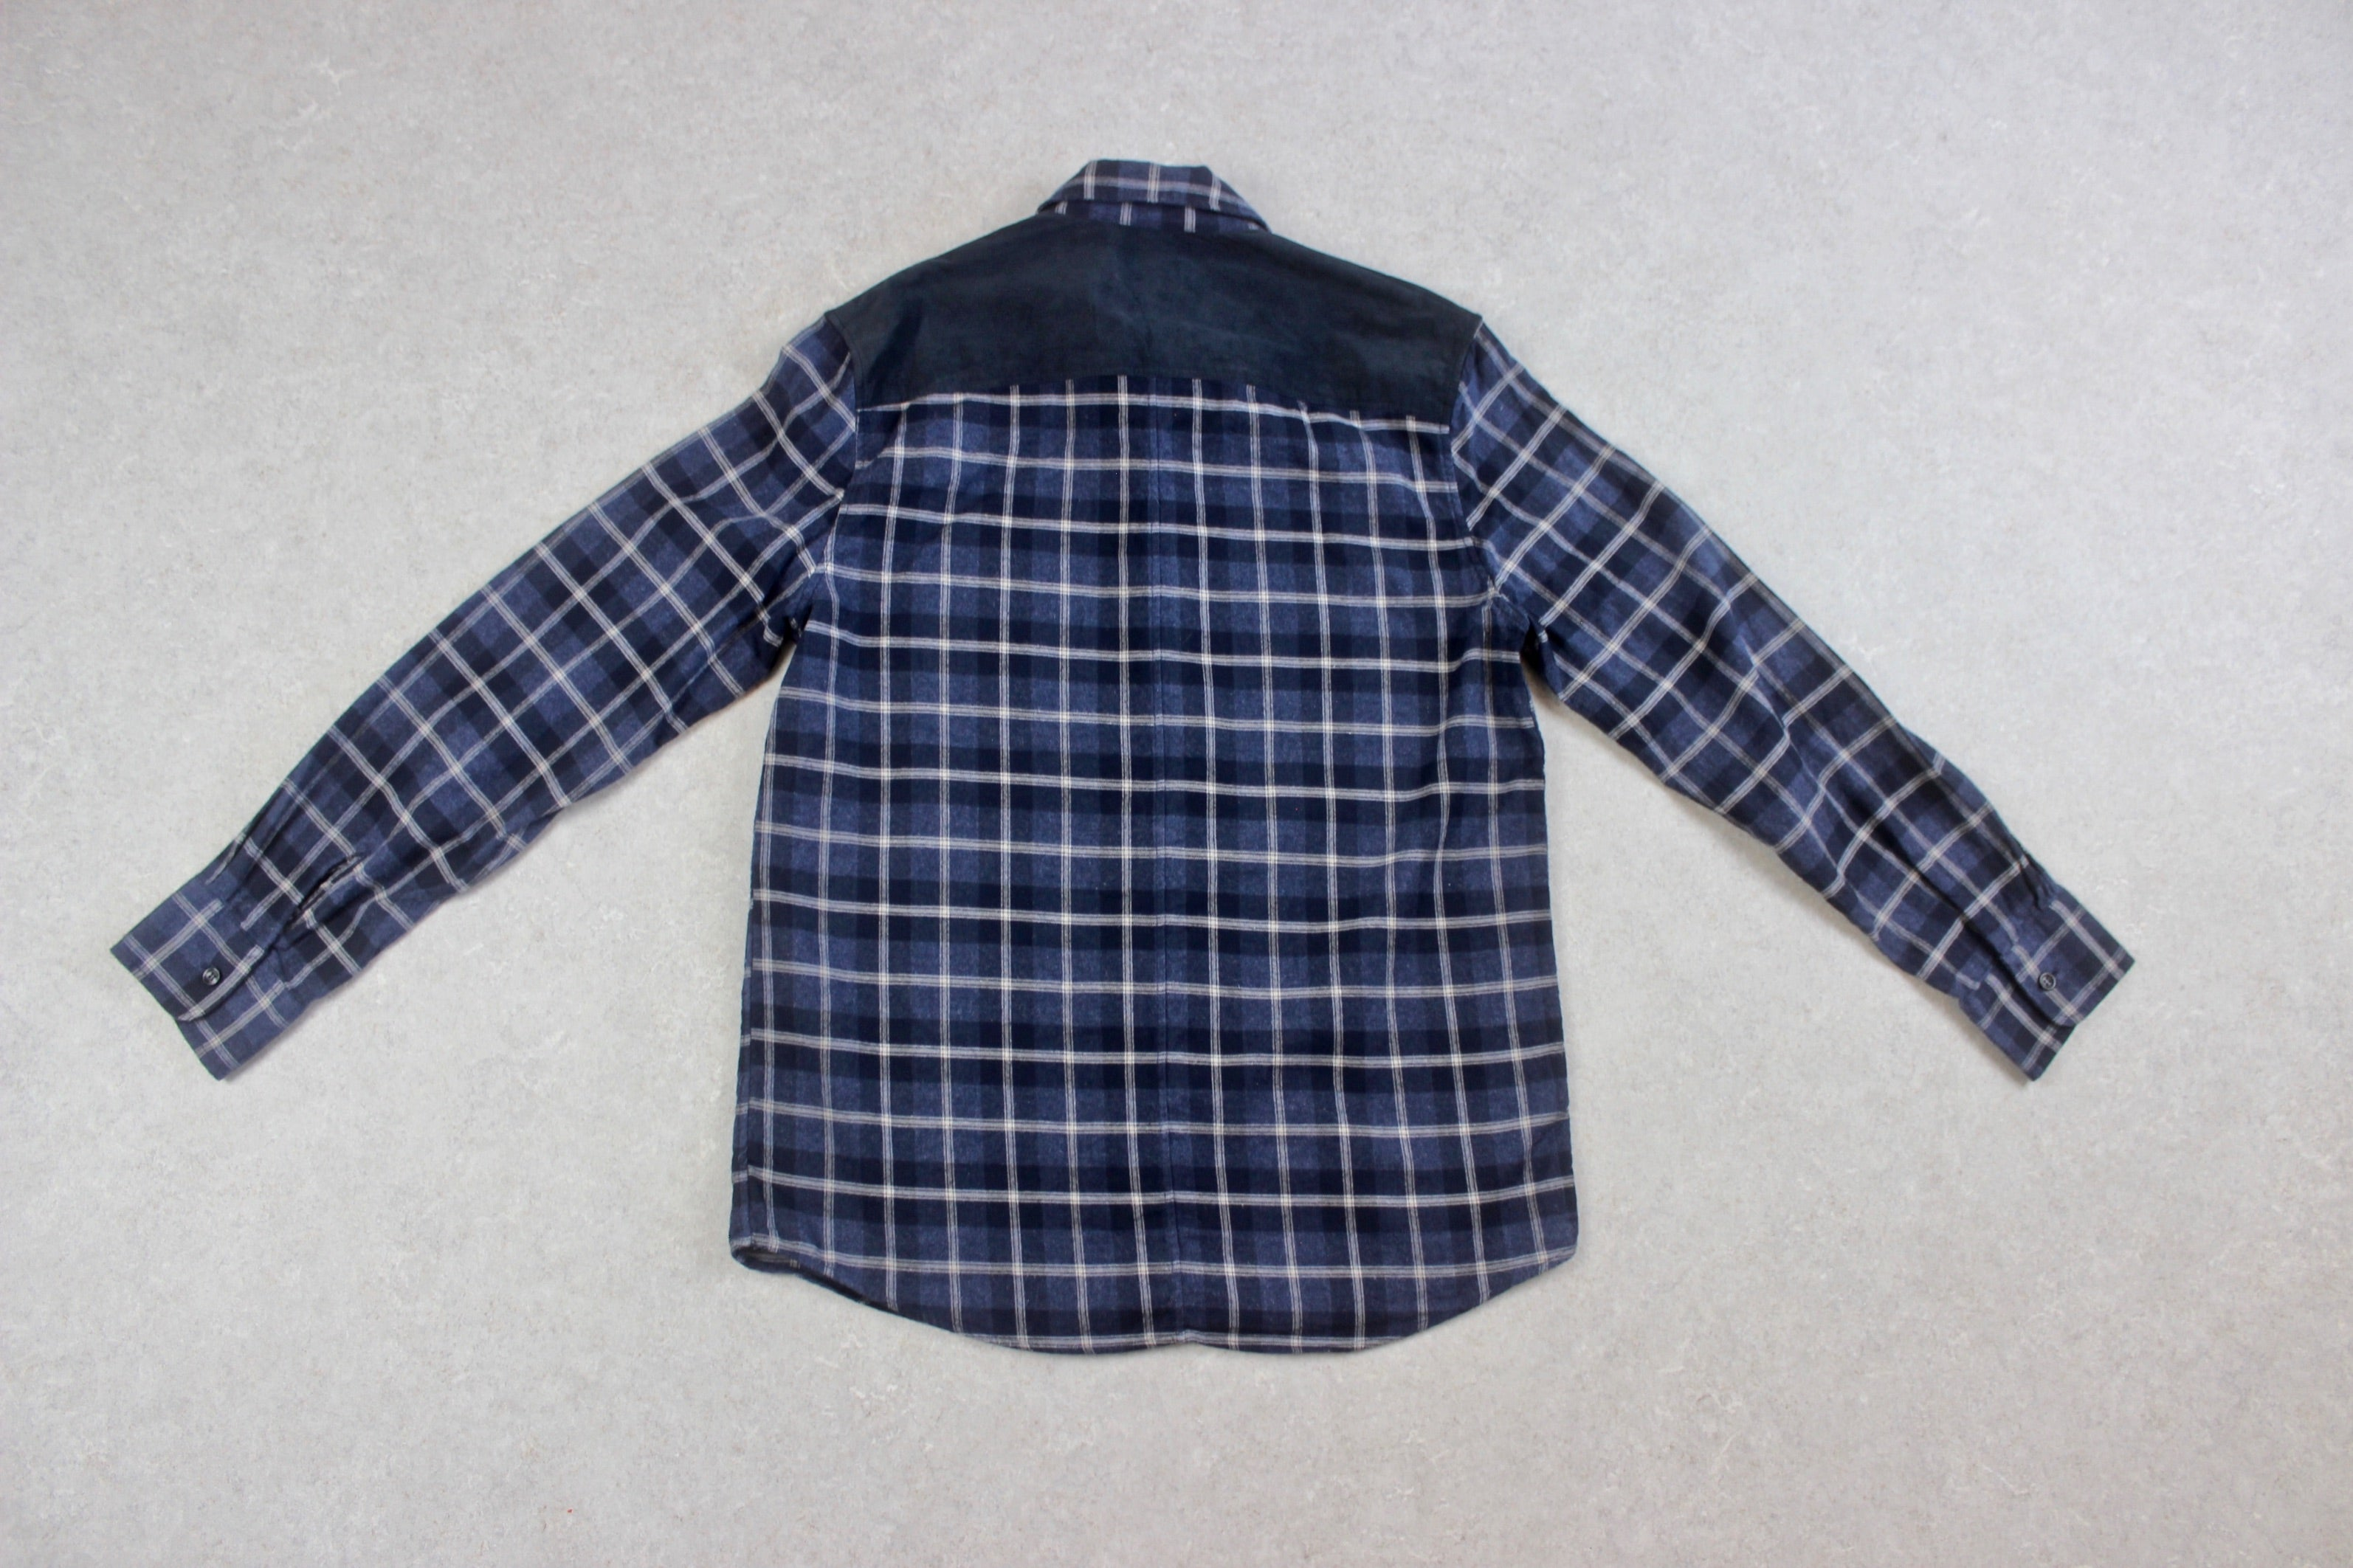 A.P.C. - Shirt - Navy Blue/Grey Check - Medium